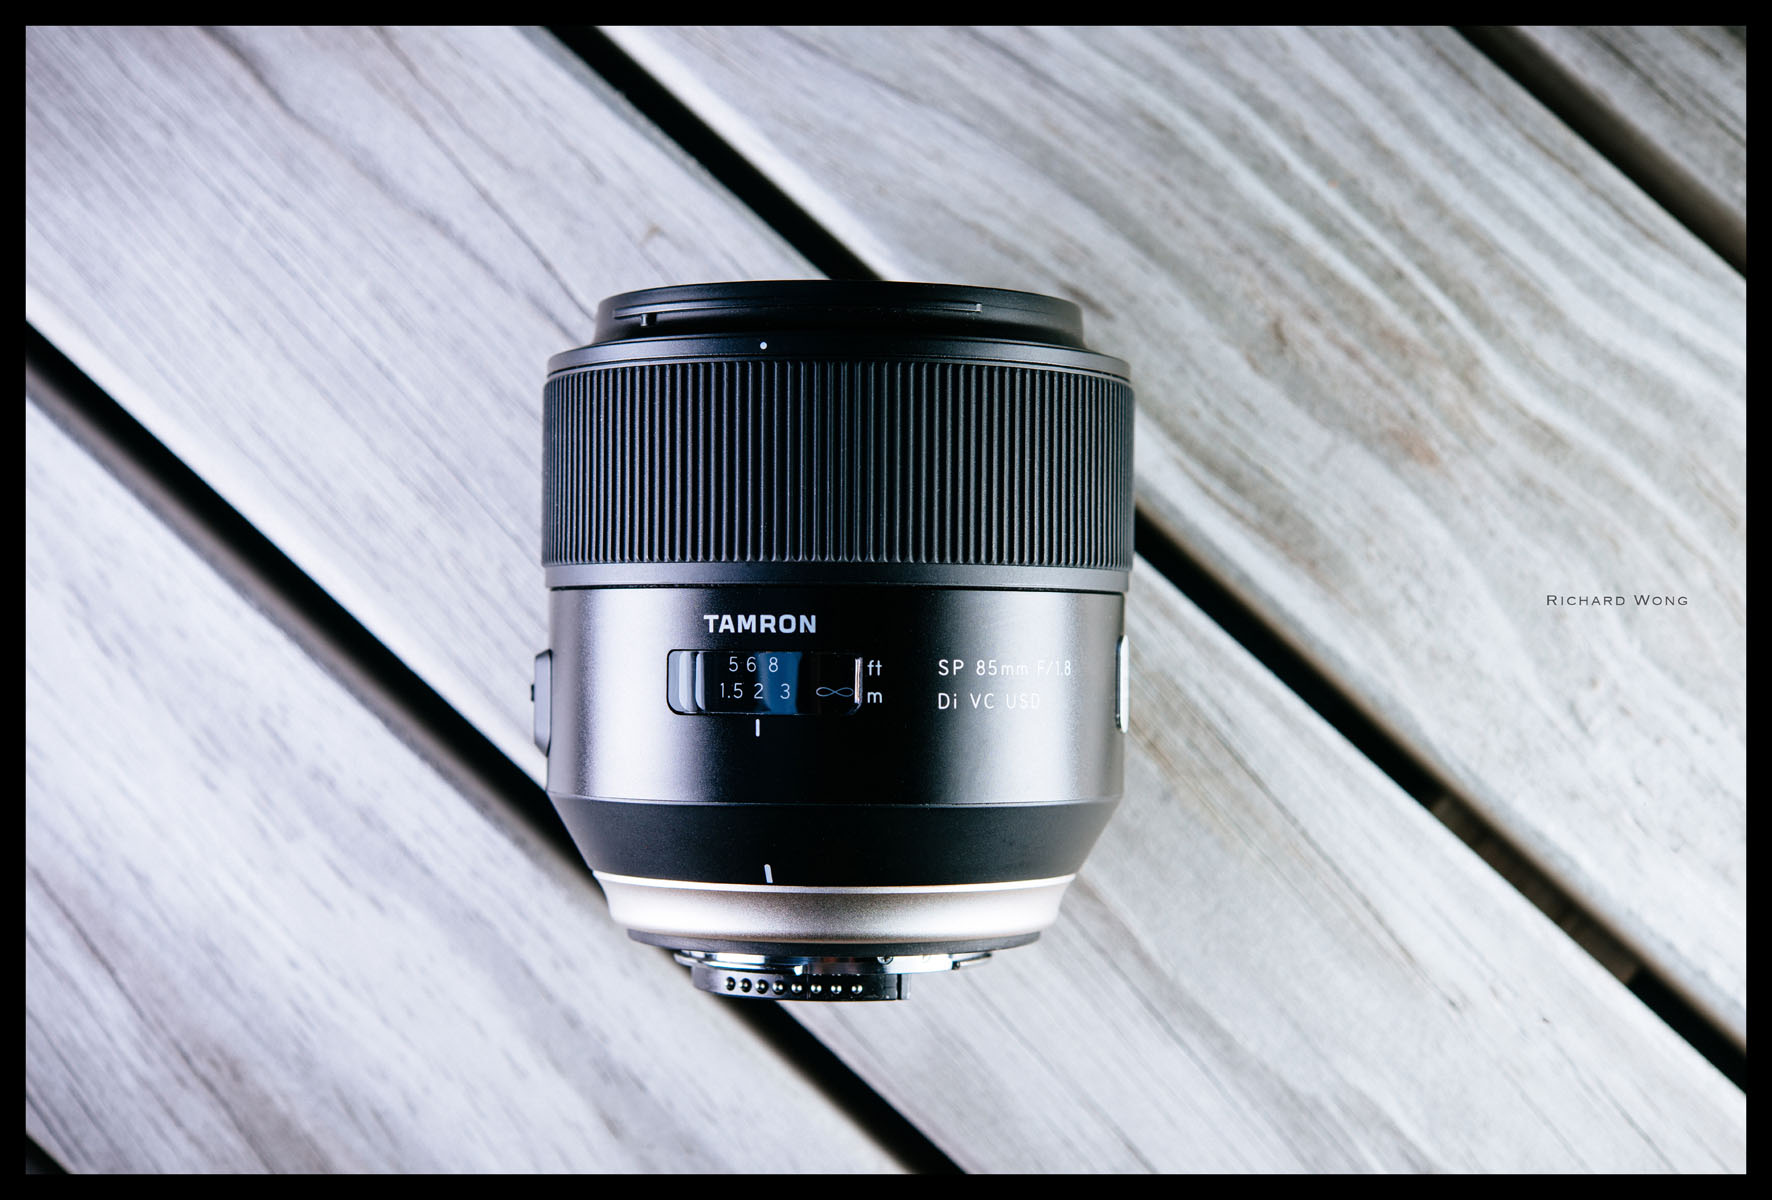 Tamron-f016-85mm-f1.8-vc-review-03